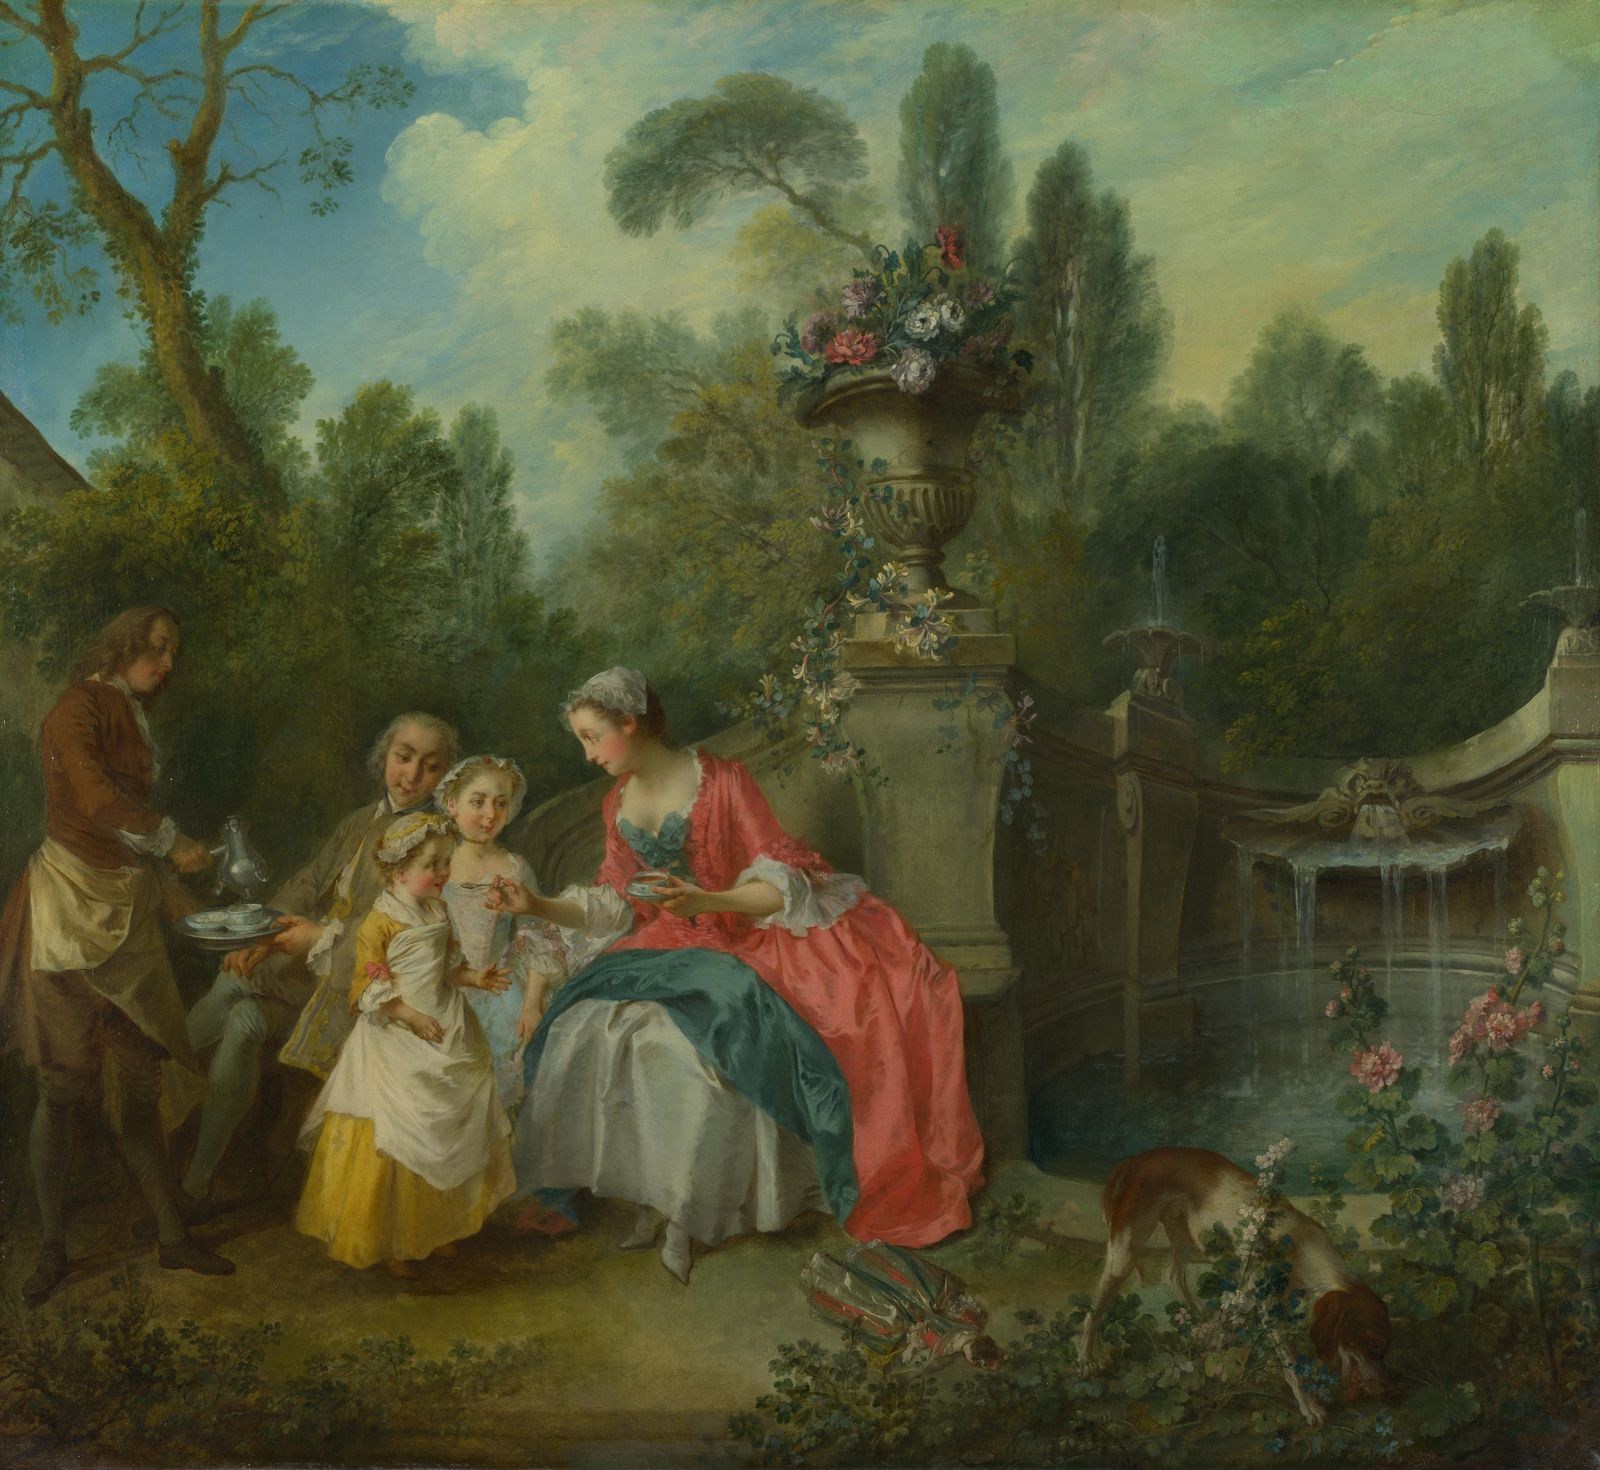 Rococo Art Movement A Lady in a Garden taking Coffee with some Children by Nicolas Lancret